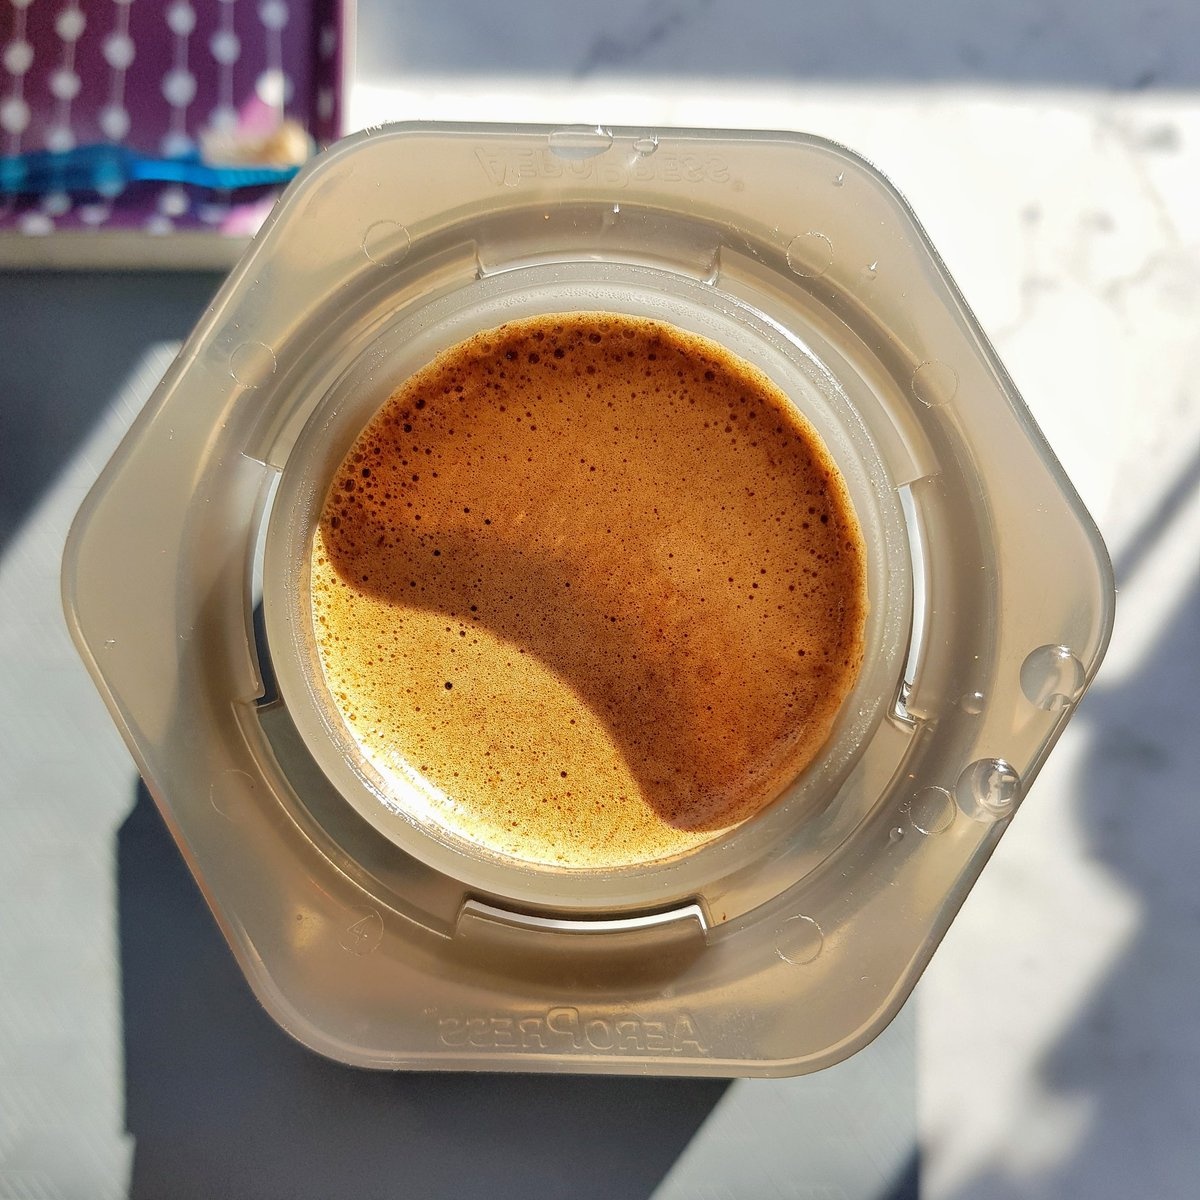 Switched back to the Aeropress this morning with the sun 🌞. In these current times, don't forget to get out for a walk, it's very important. ☕👍